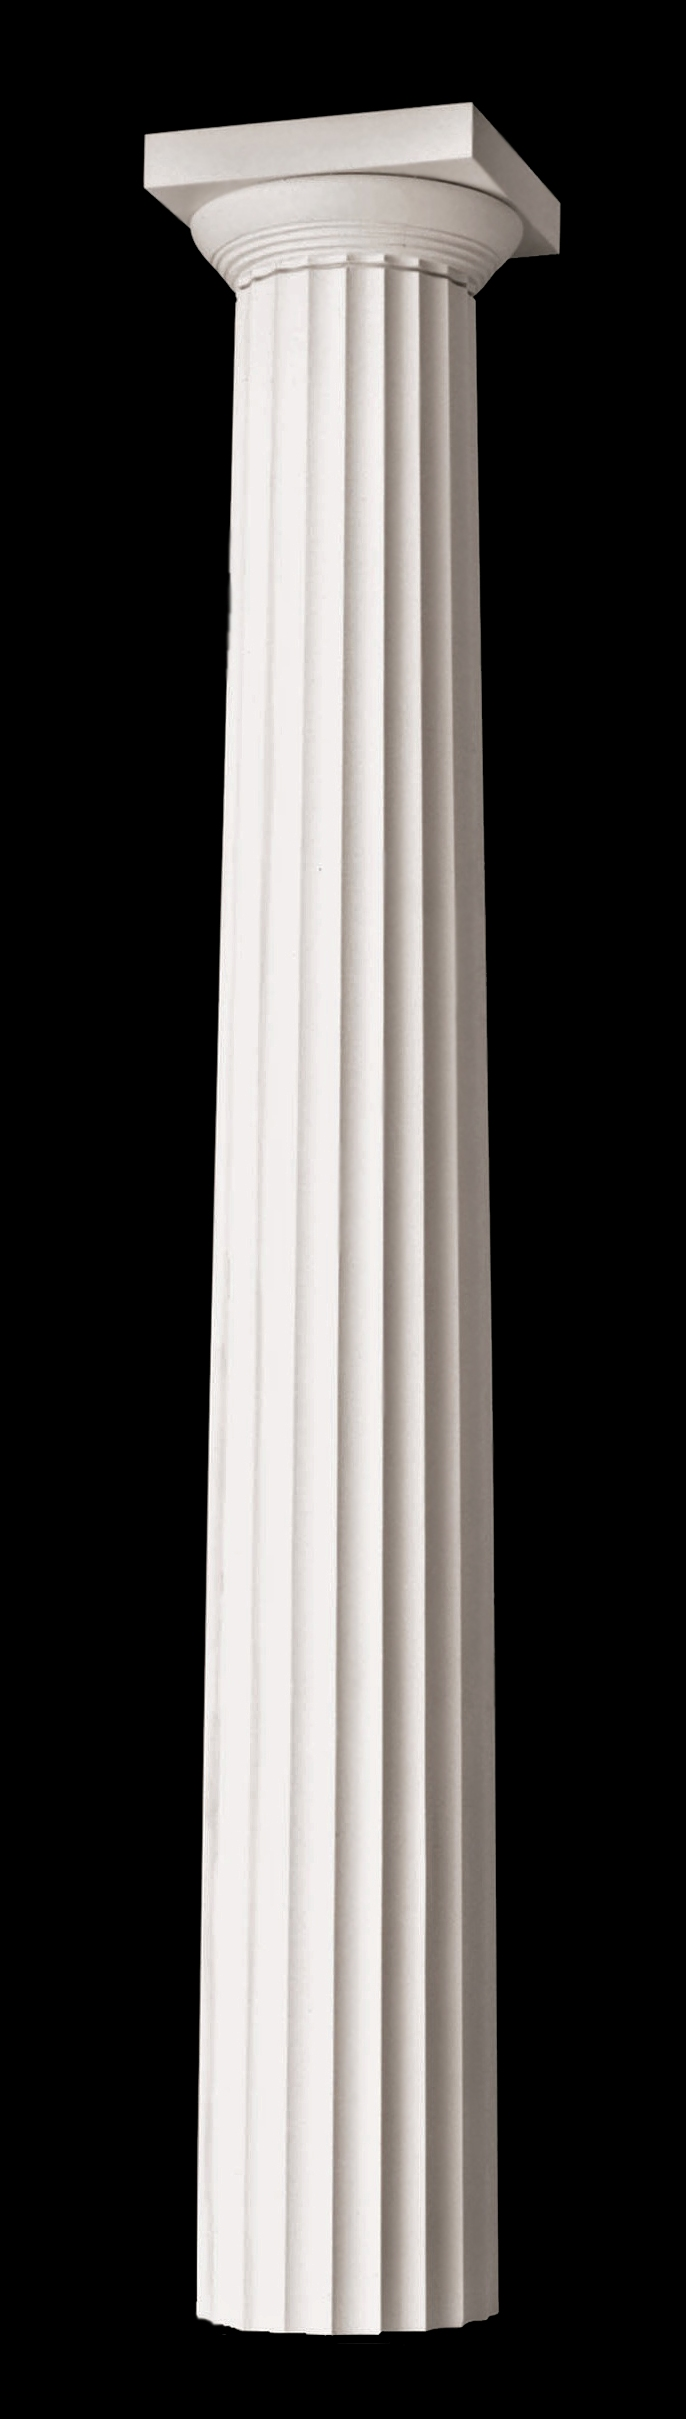 Pin doric columns on pinterest for Architectural wood columns